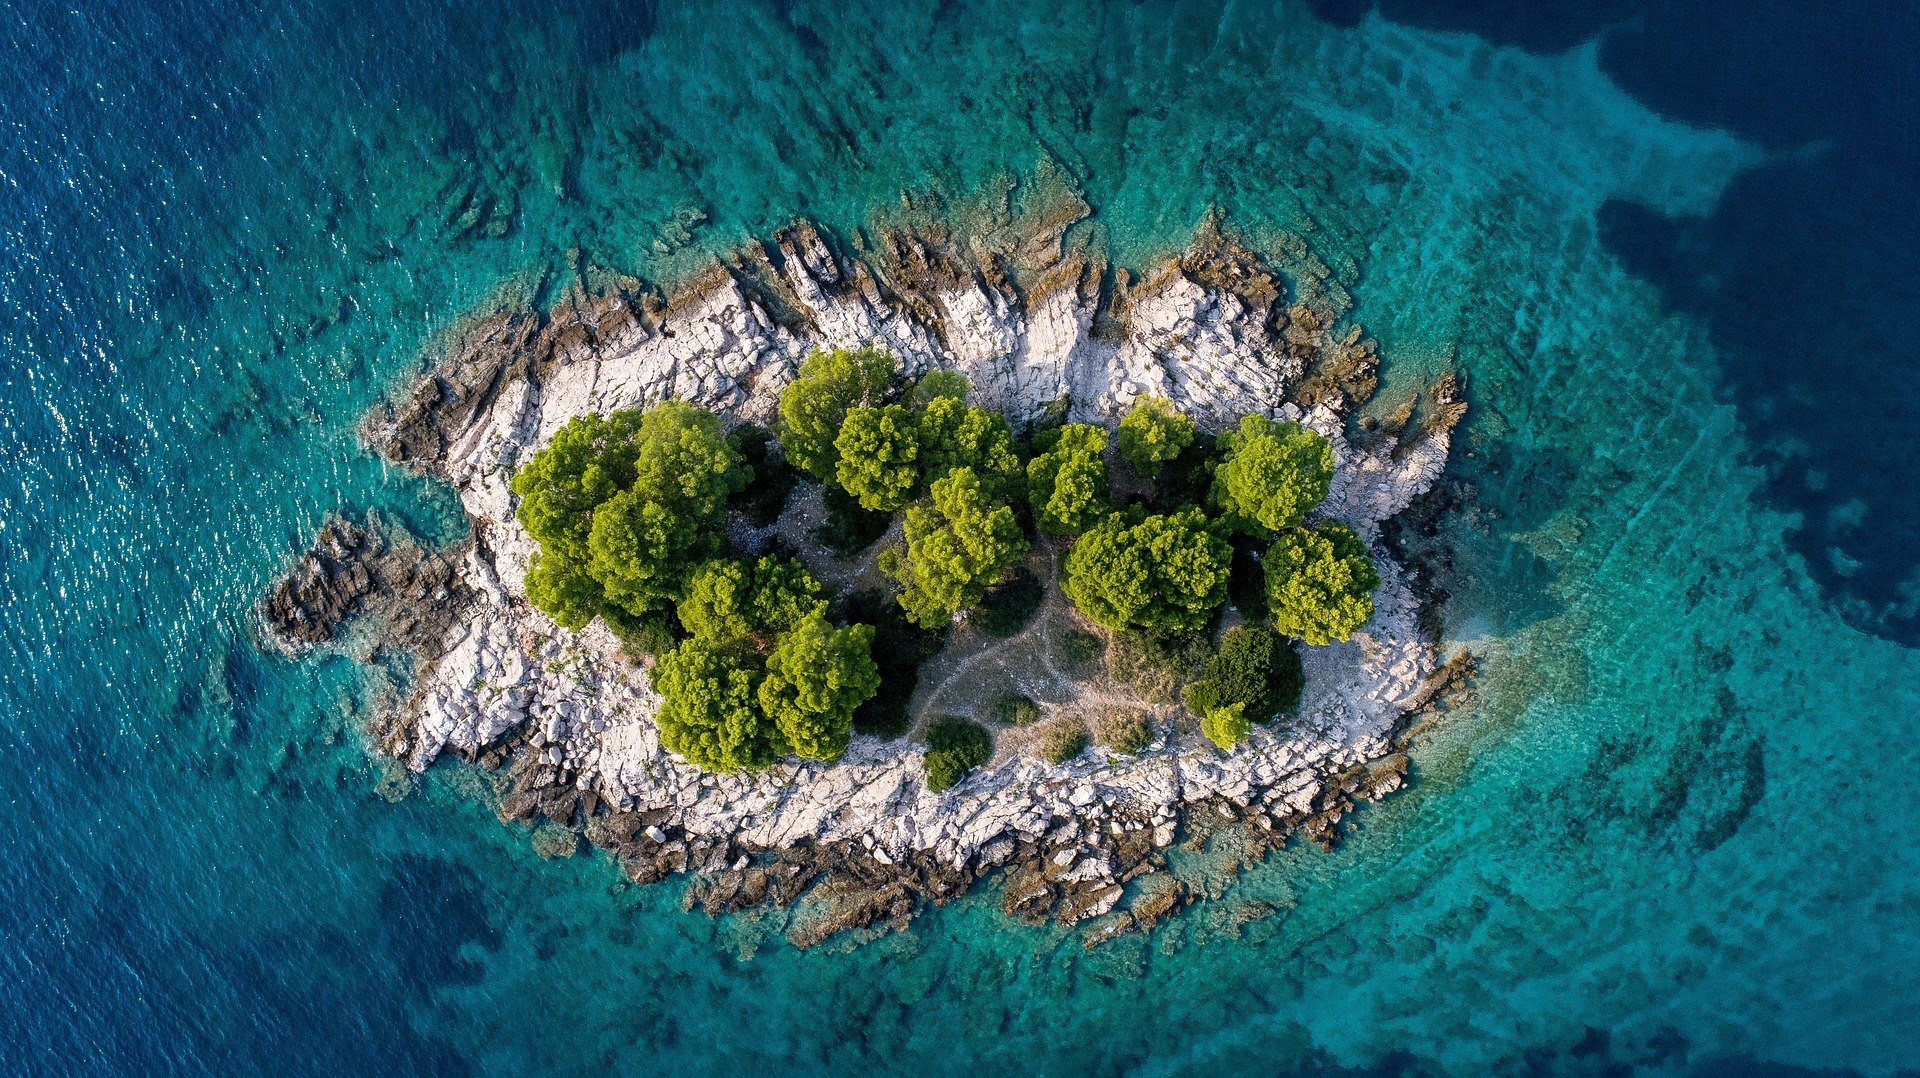 aerial view of rocky island with trees on it in Croatia